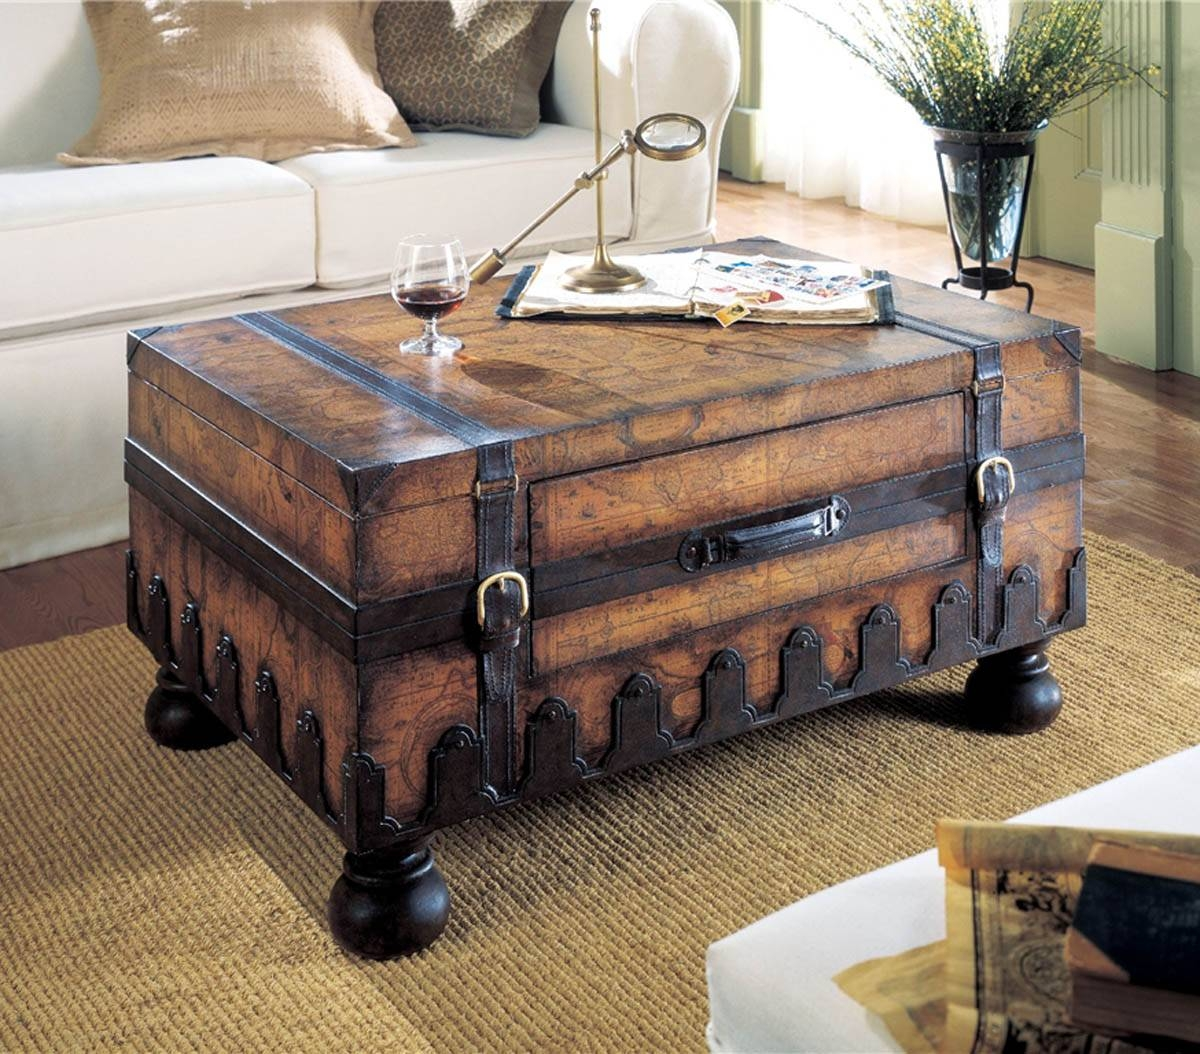 Steamer Trunk Coffee Table Stainless Steel Throughout Steamer Trunk Stainless Steel Coffee Tables (View 22 of 30)